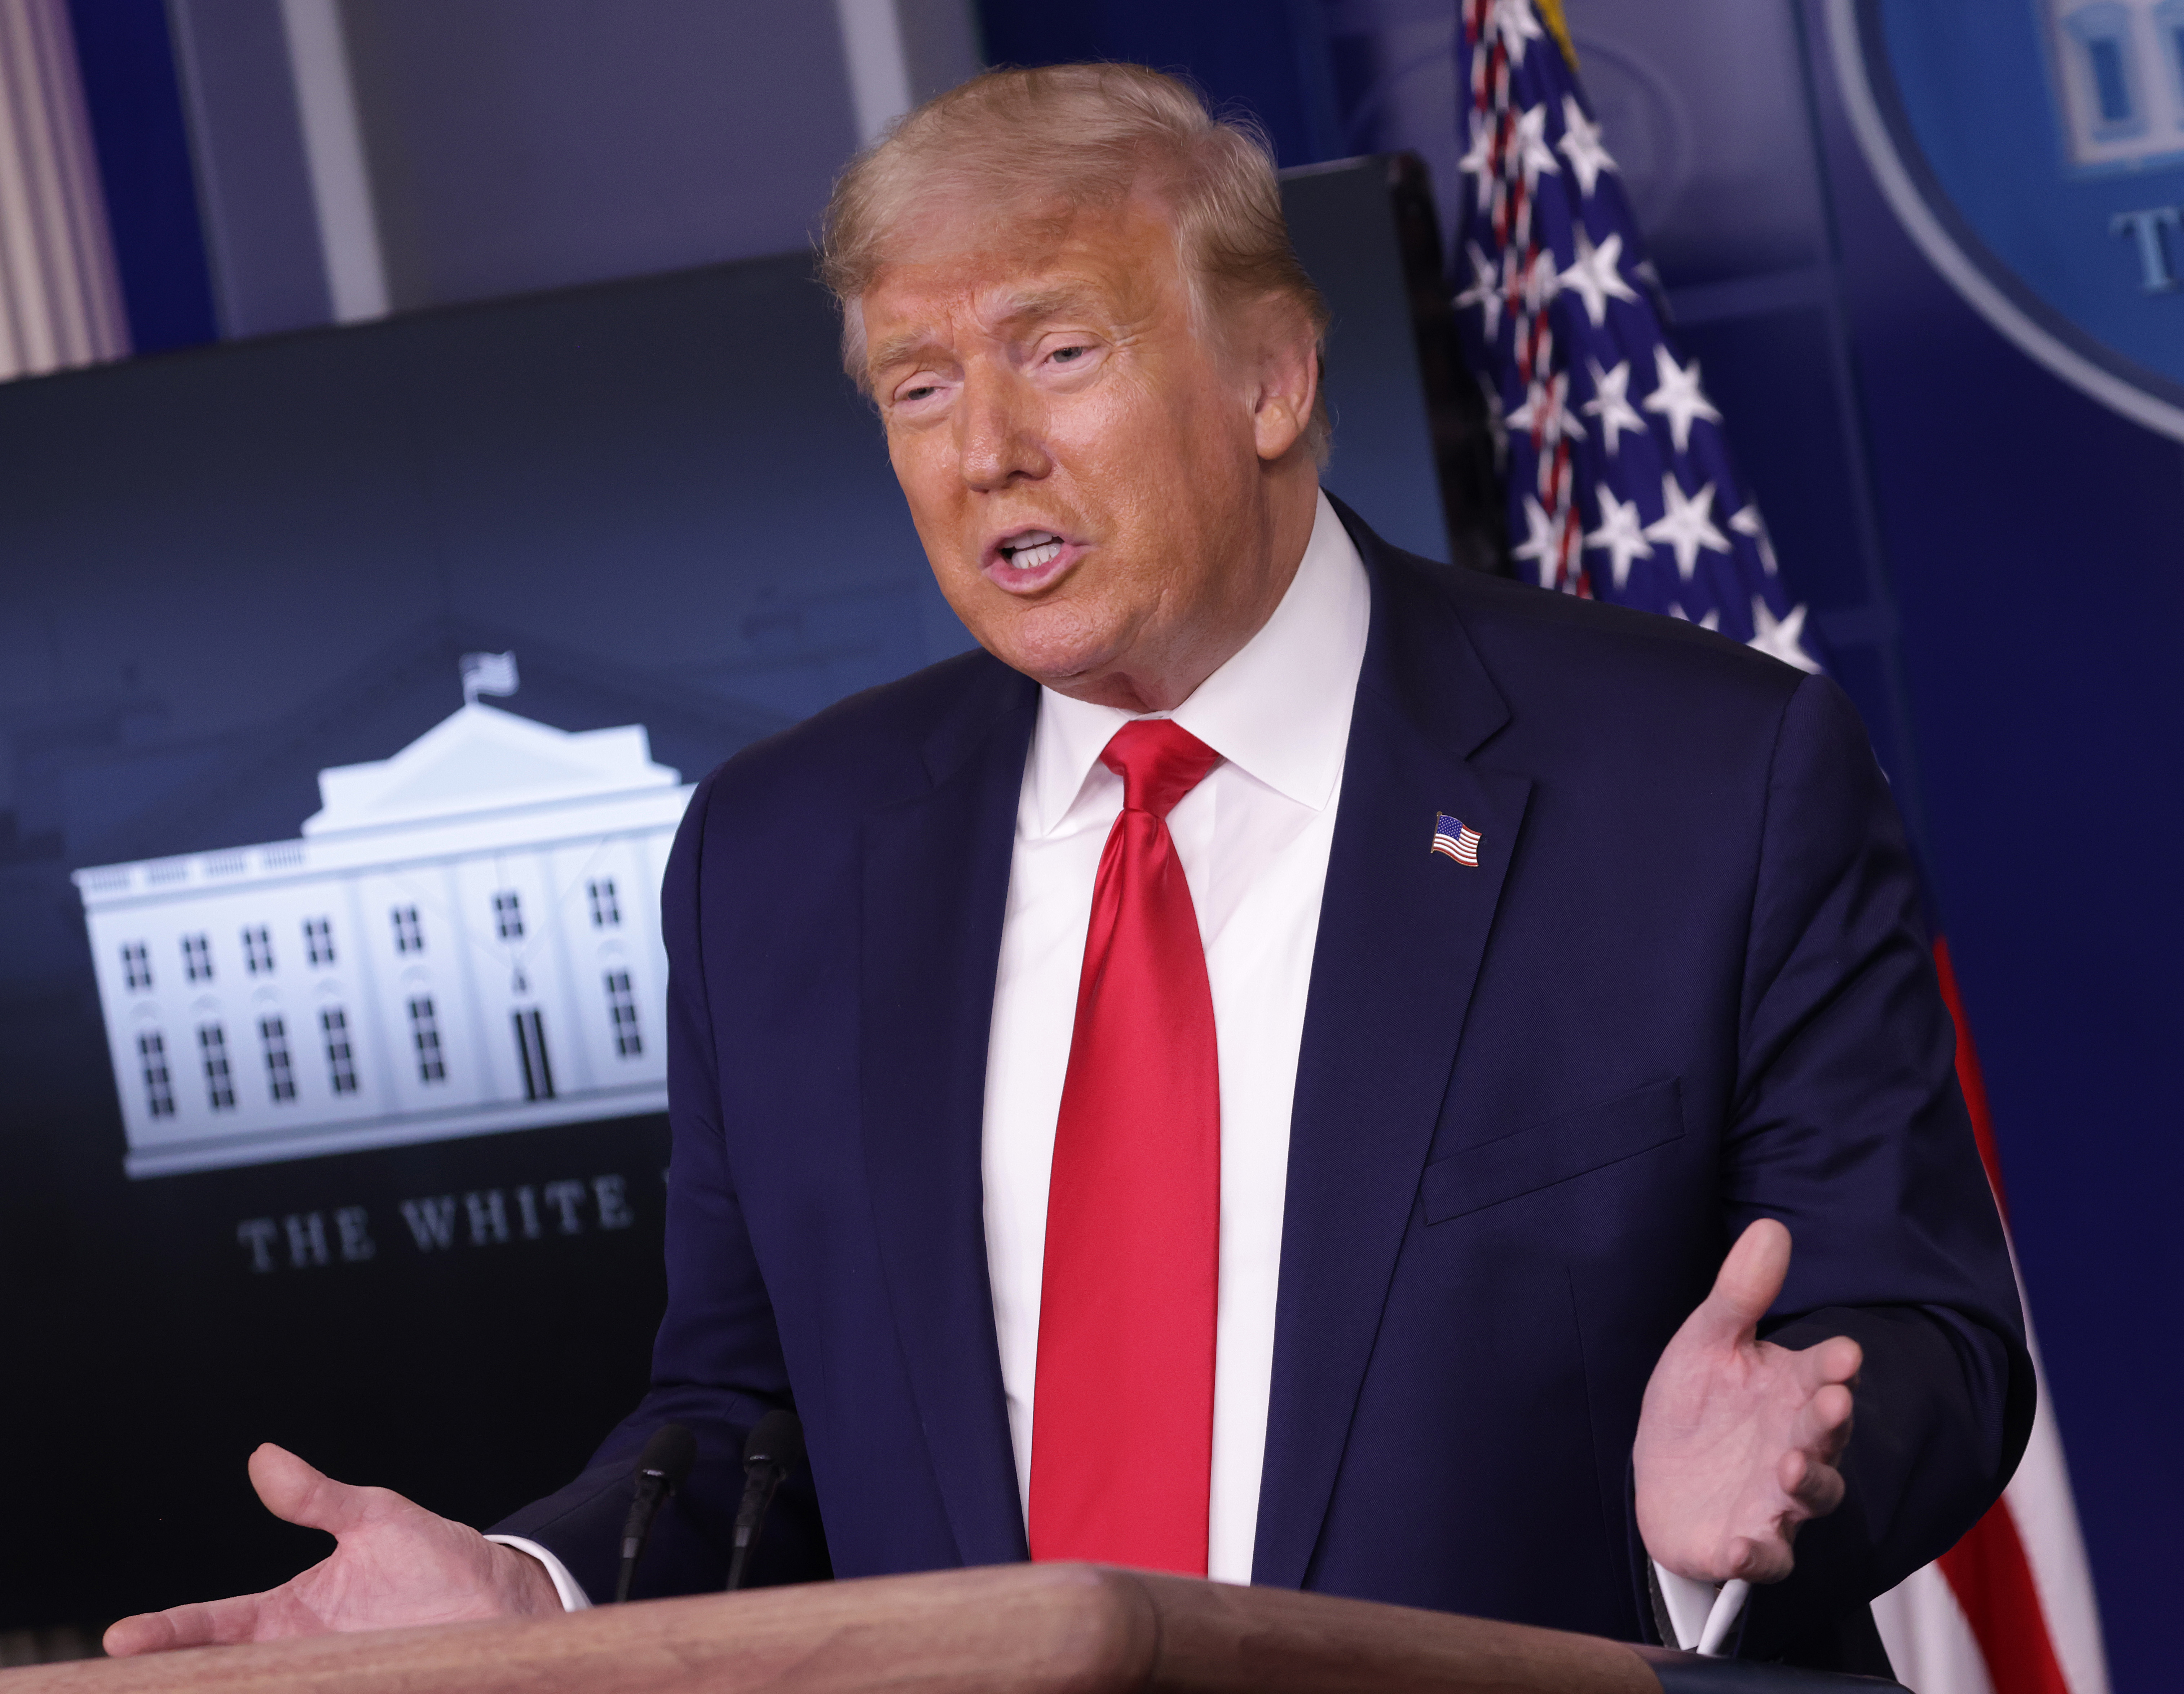 President Trump Holds News Conference In The White House